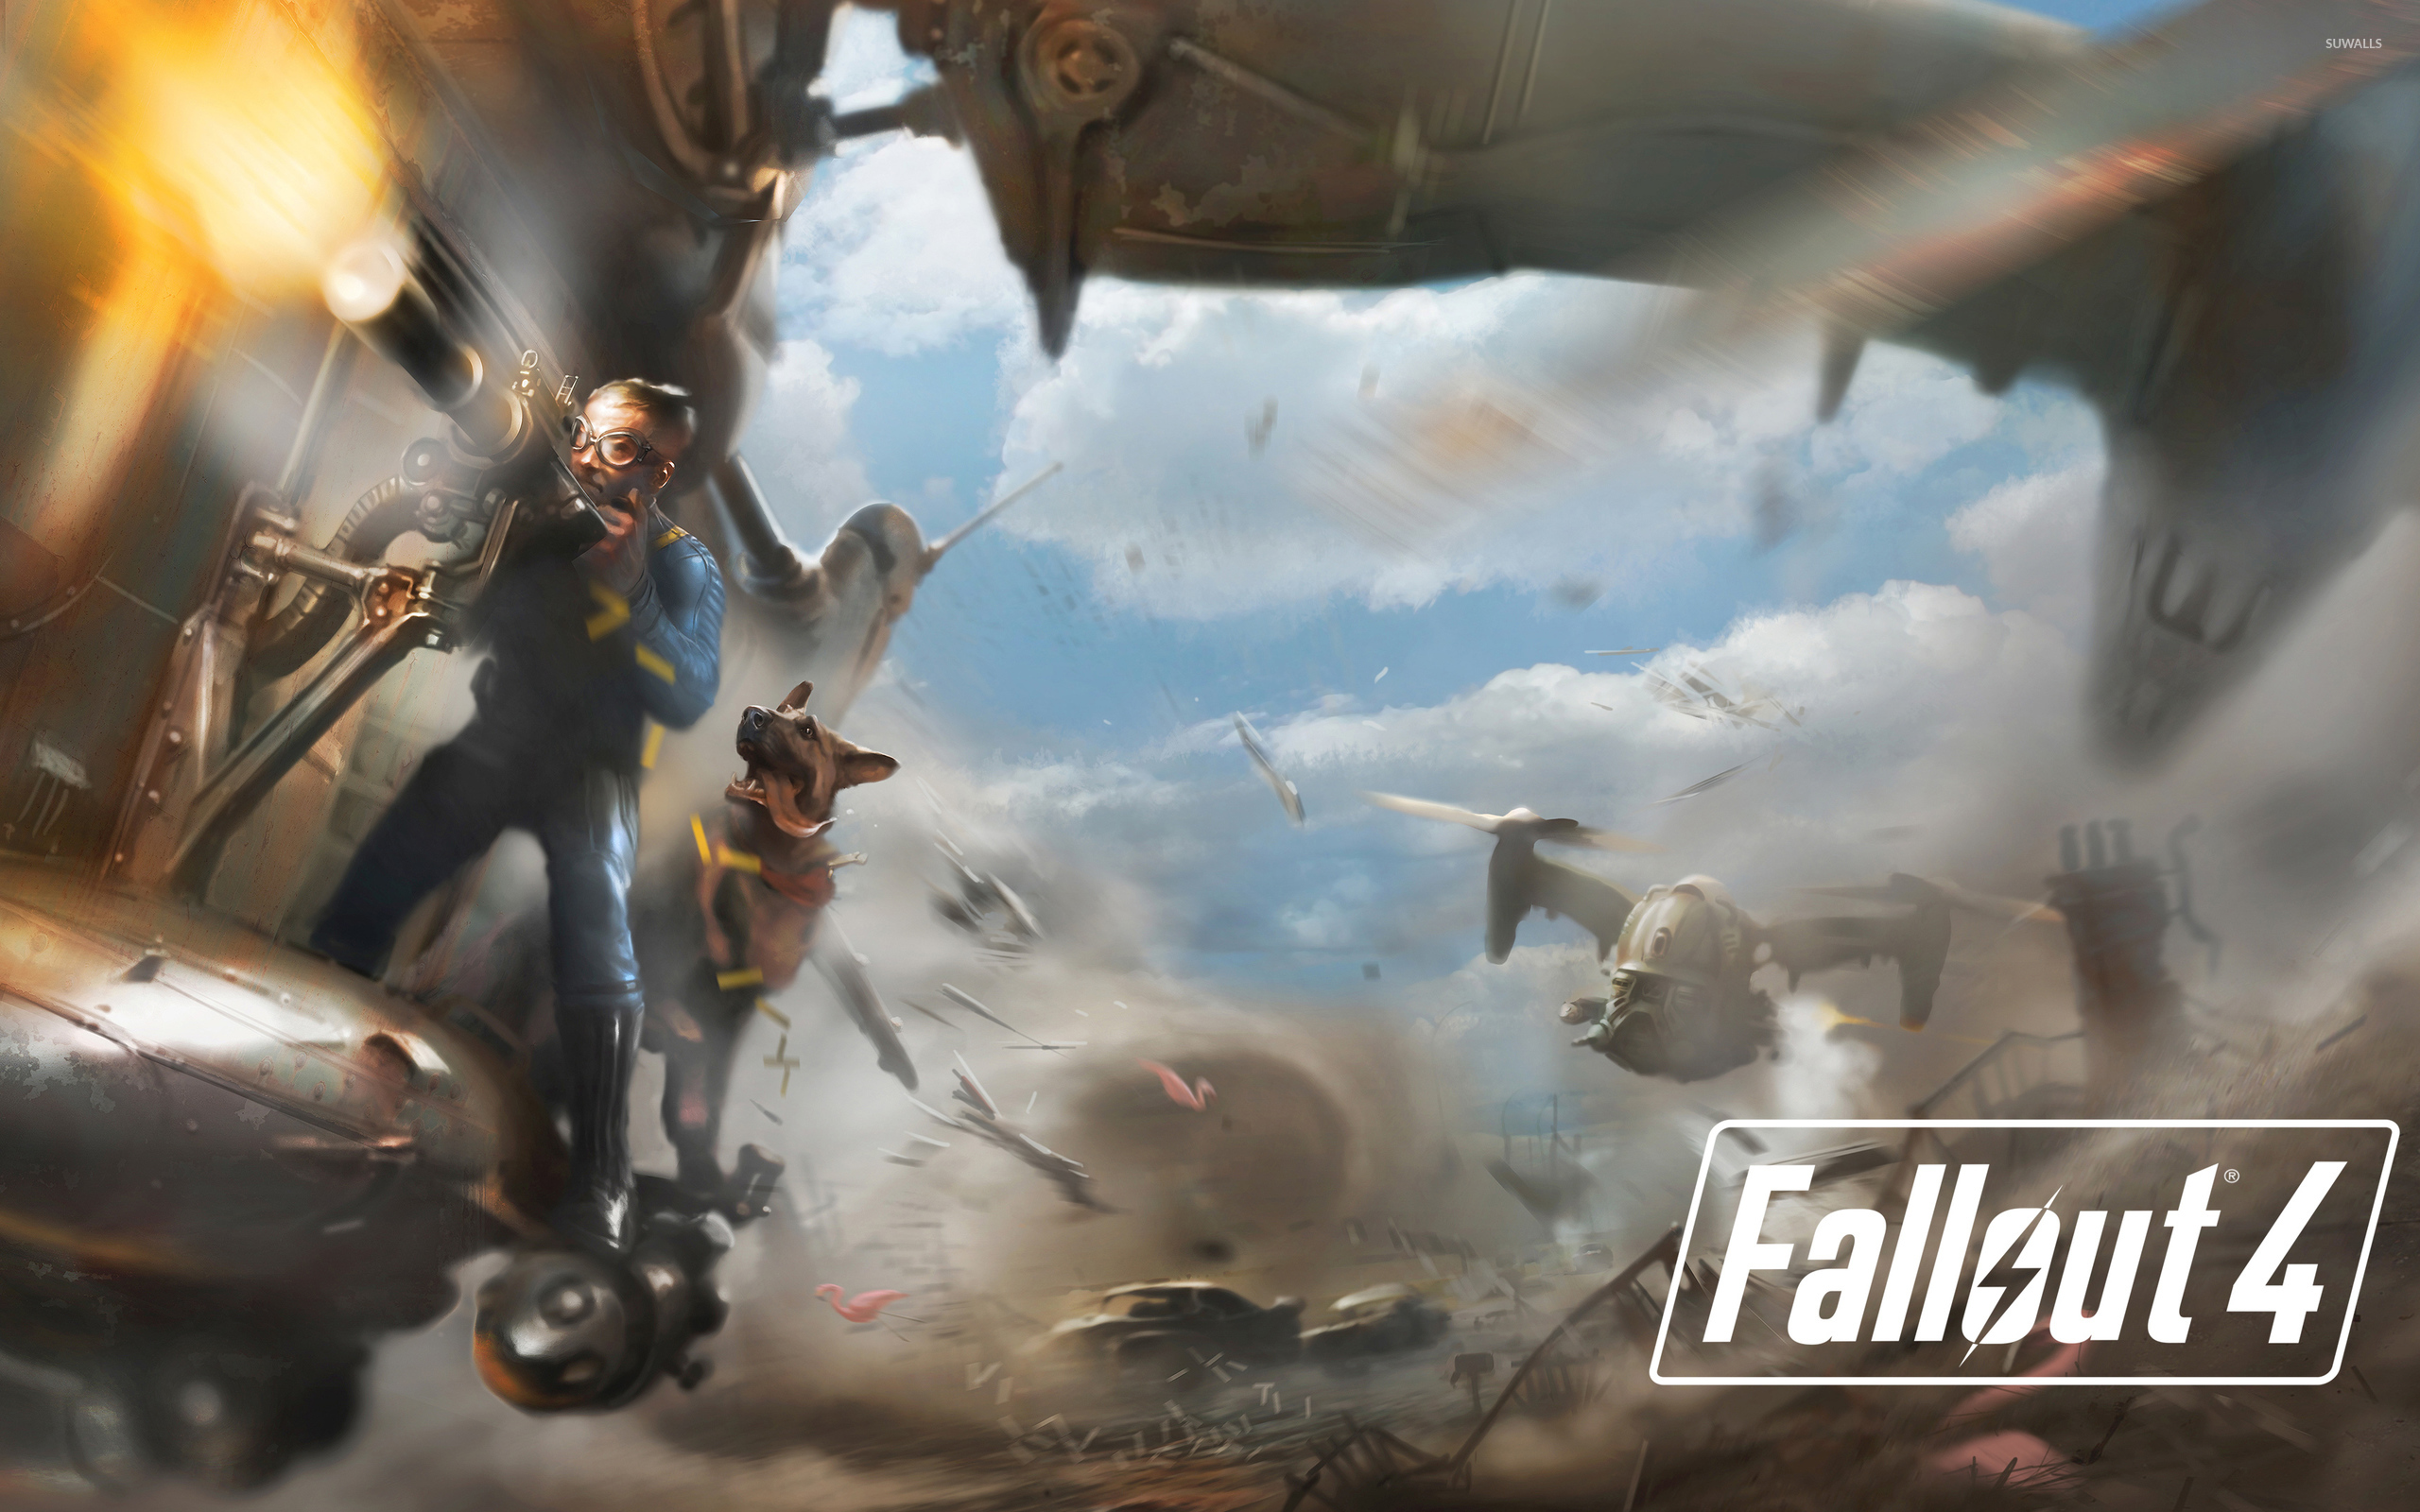 Battle In Fallout 4 Wallpaper Game Wallpapers 49539